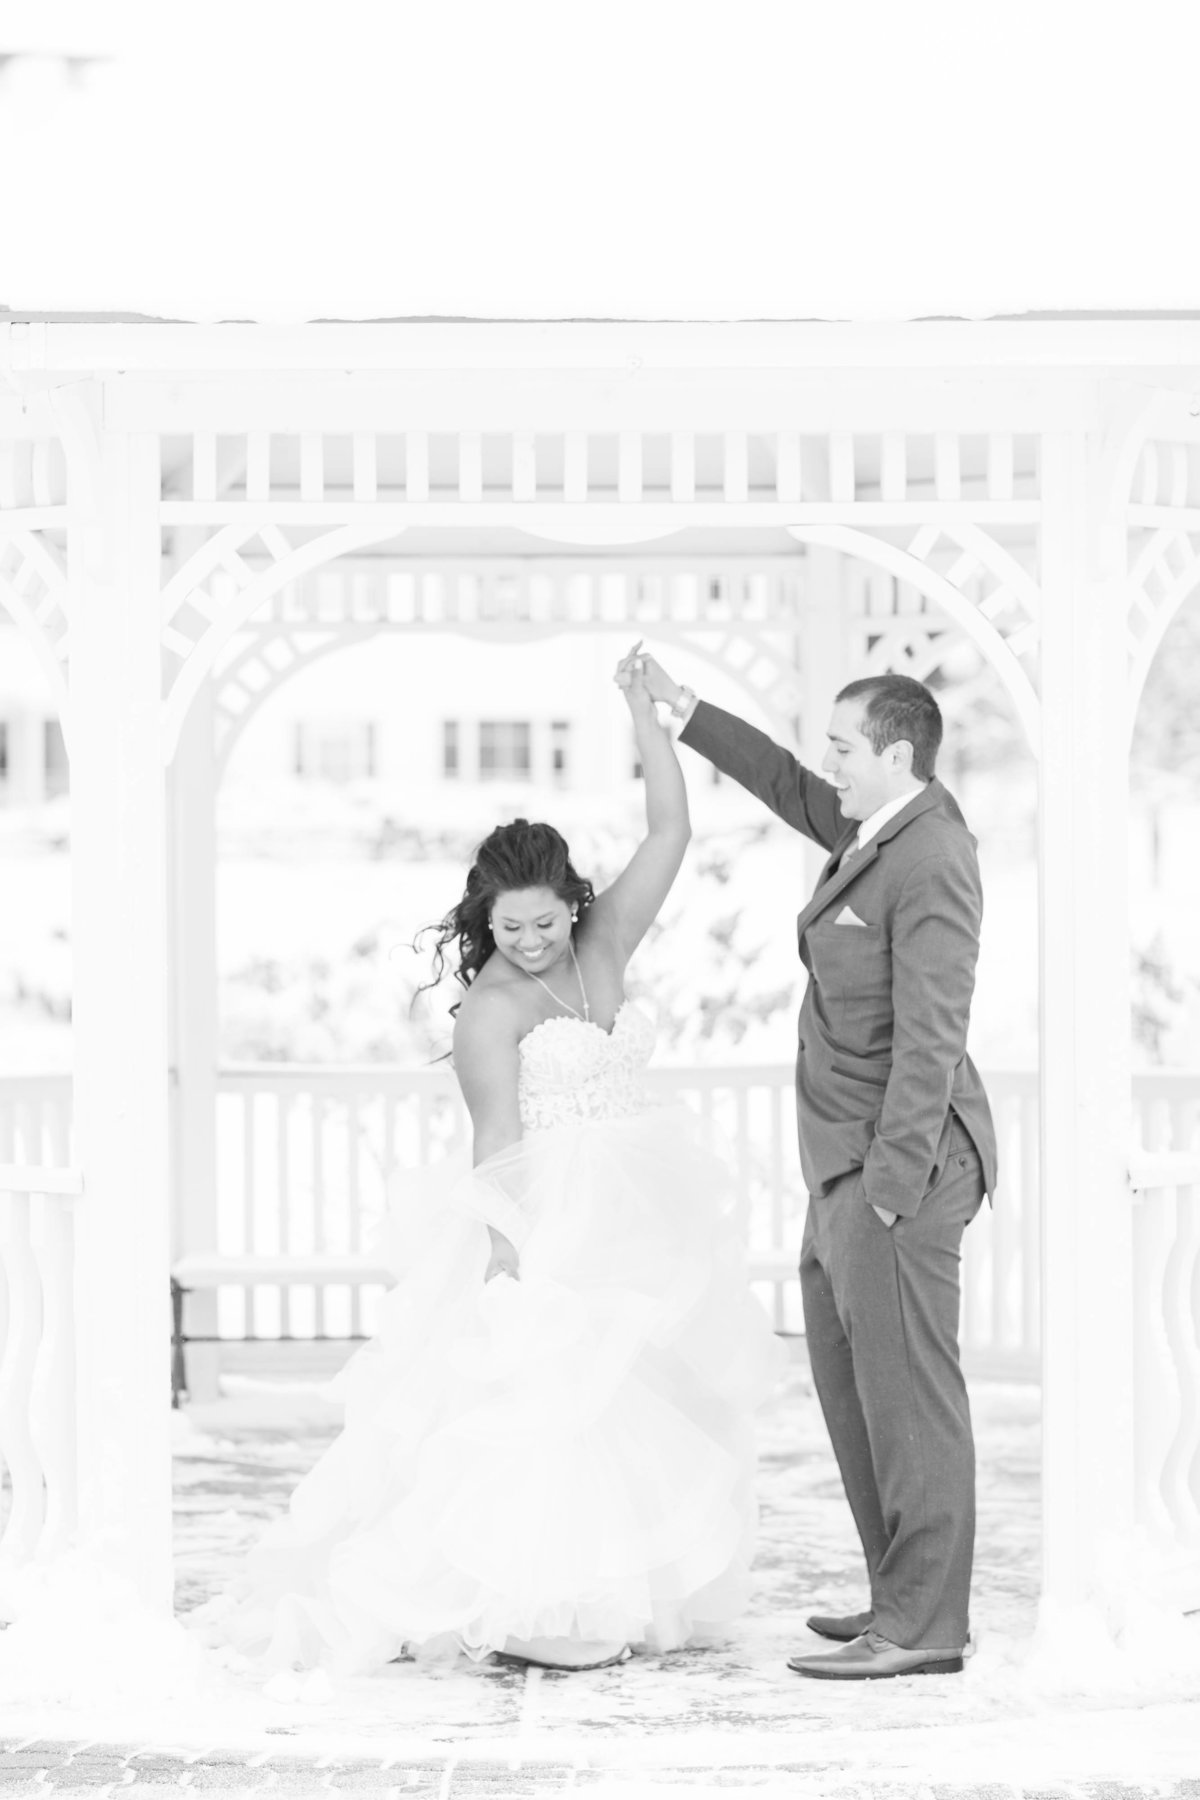 winter-wedding-wisconsin-katie-schubert-wisconsin-wedding-photographer-62